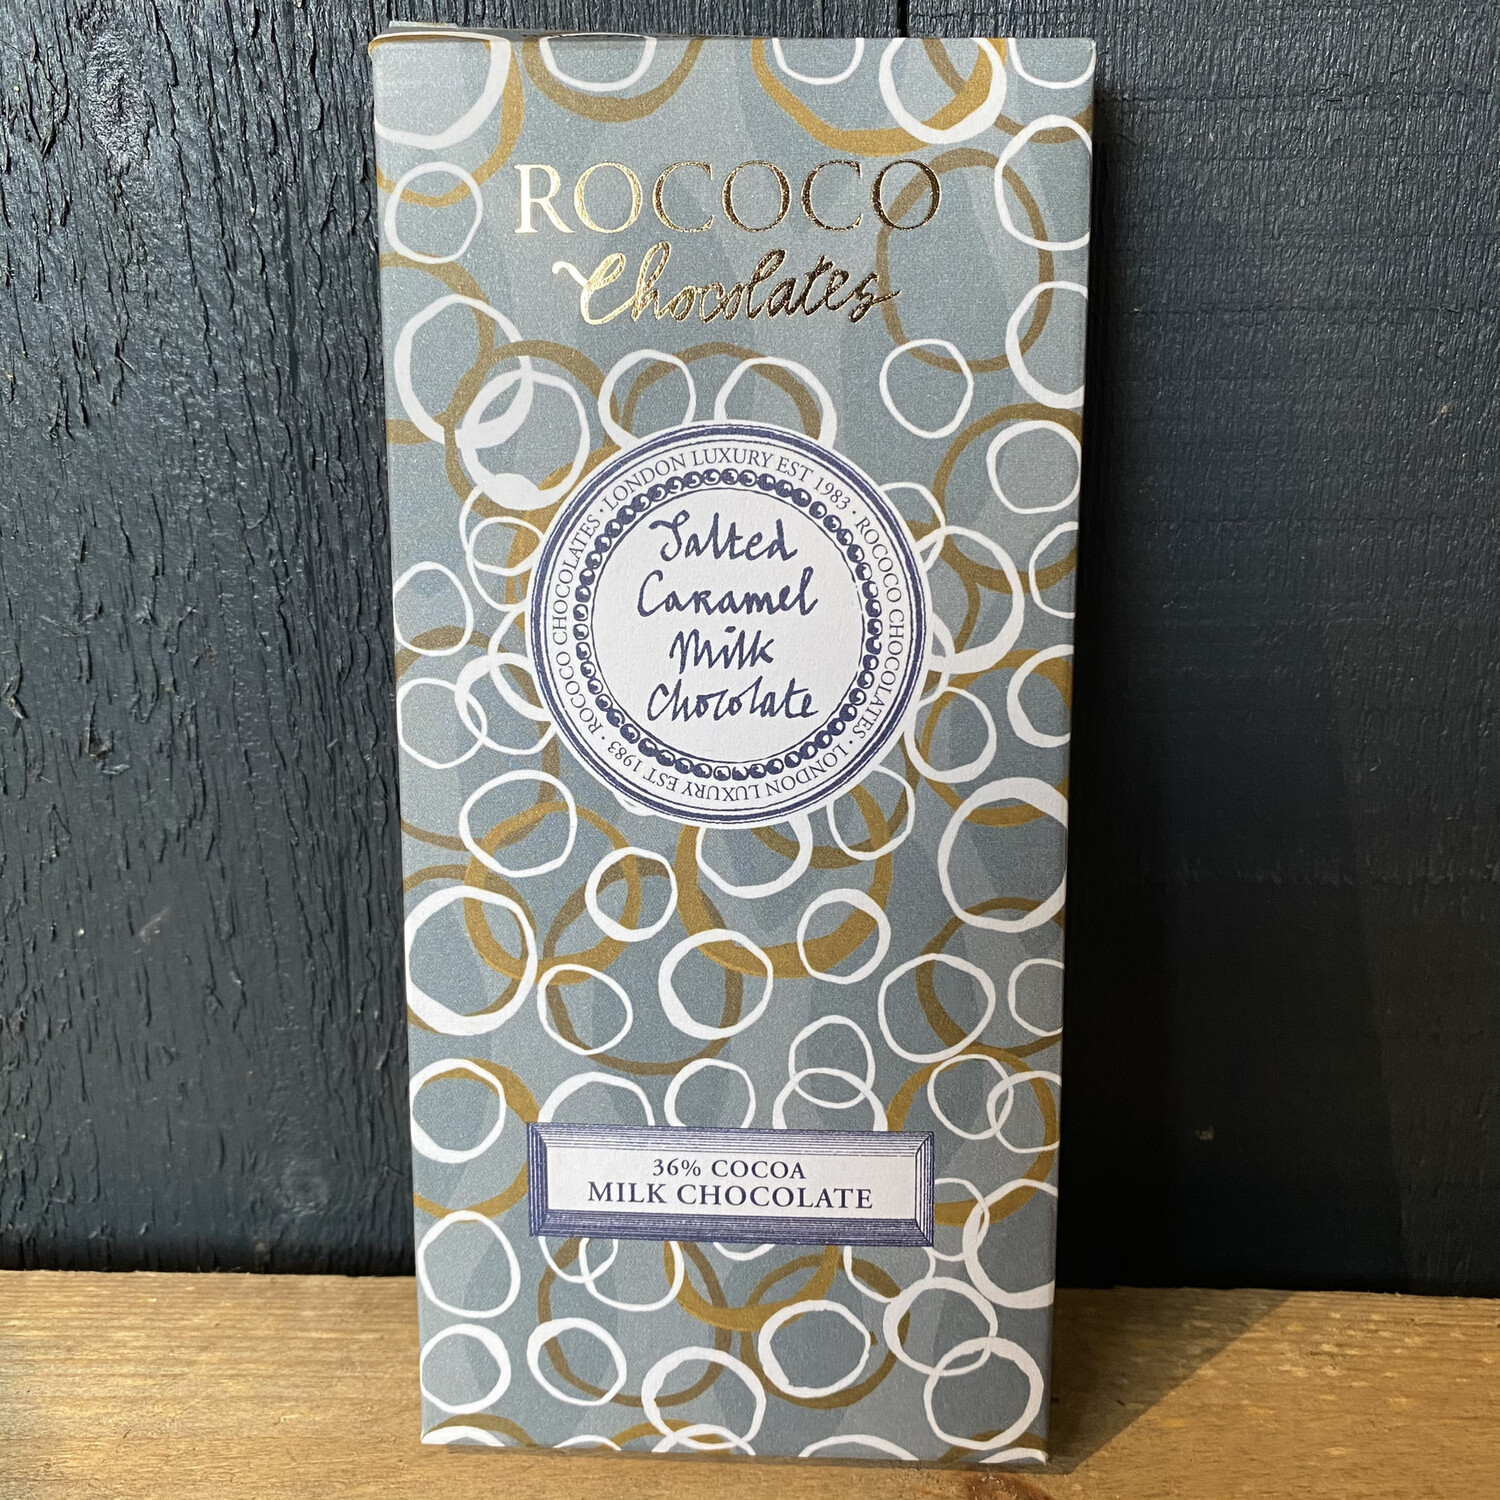 Rococo Salted Caramel Milk Chocolate